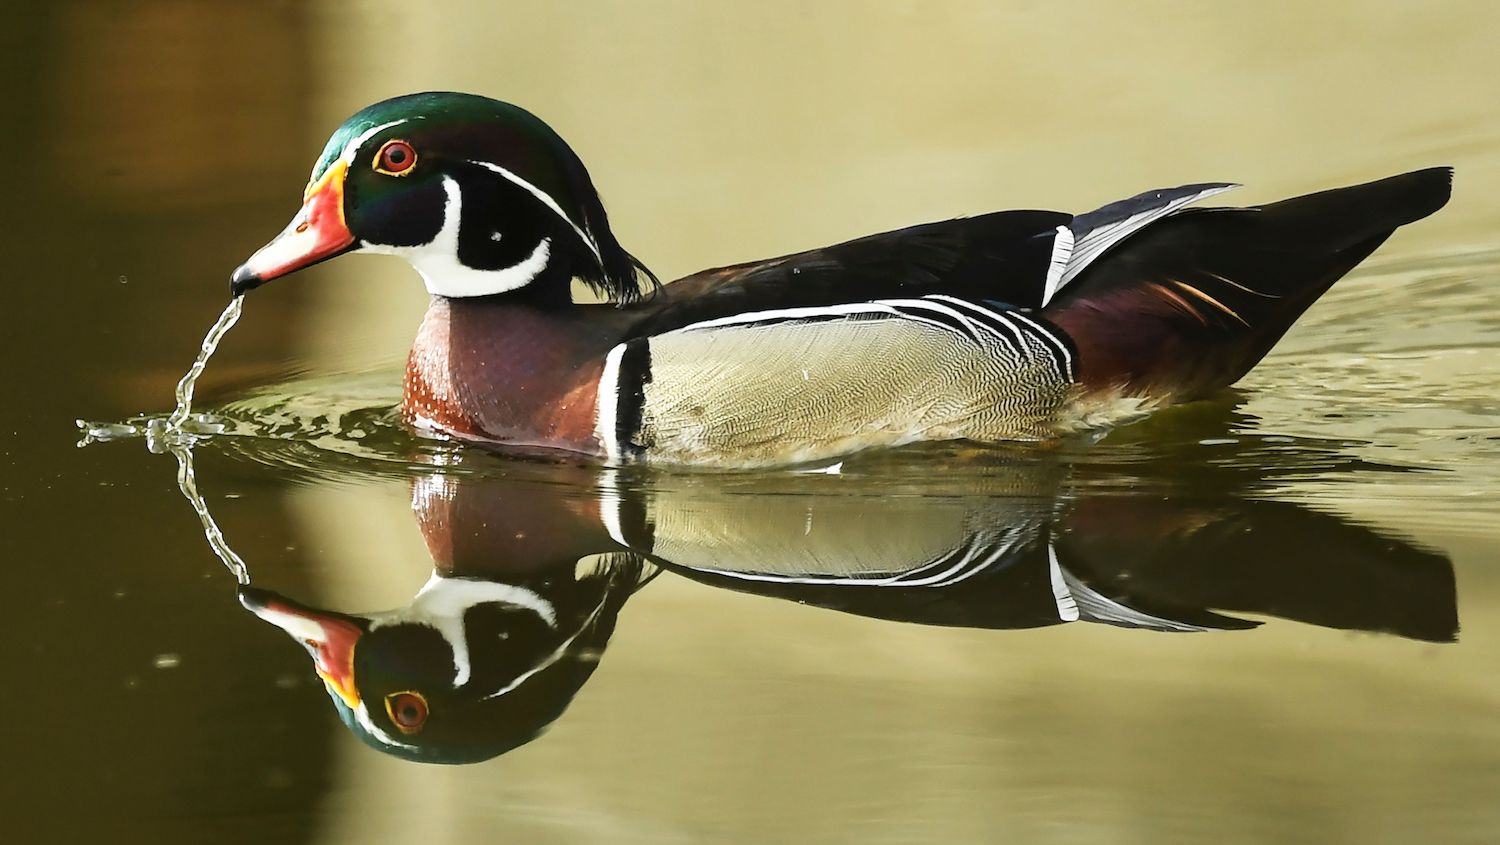 TOPSHOT - A wood duck or Carolina duck, a species of perching duck found in North America, is seen in a pond at the Ghosh Para area of Howrah District near Kolkata on August 11, 2020. (Photo by Dibyangshu SARKAR / AFP) (Photo by DIBYANGSHU SARKAR/AFP via Getty Images)